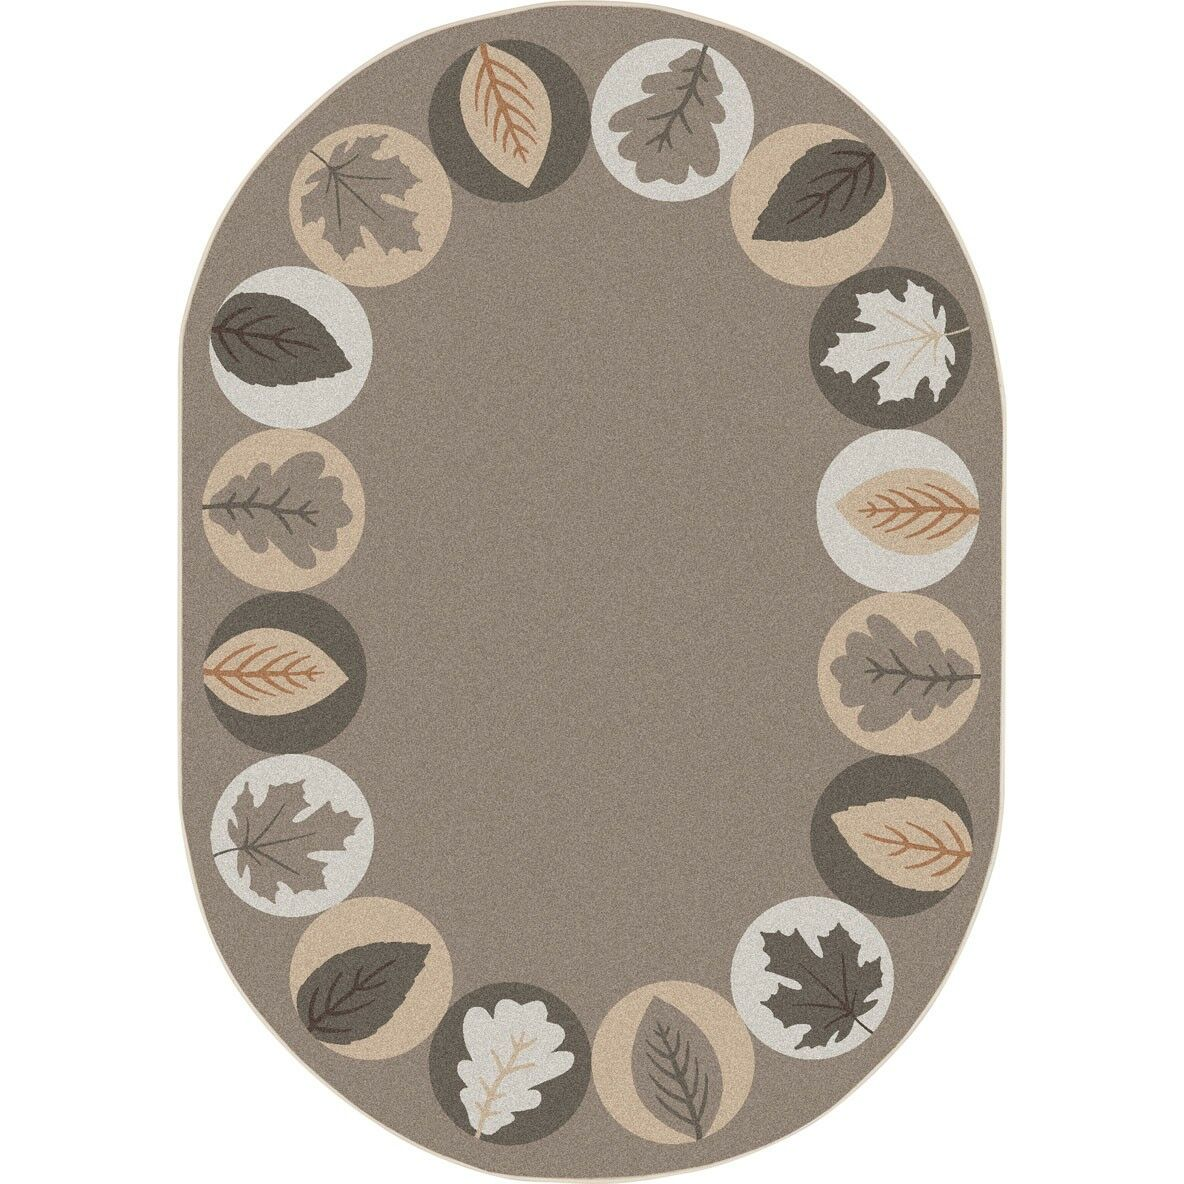 Almira Lively Leaves Brown Area Rug Rug Size: Oval 7'8